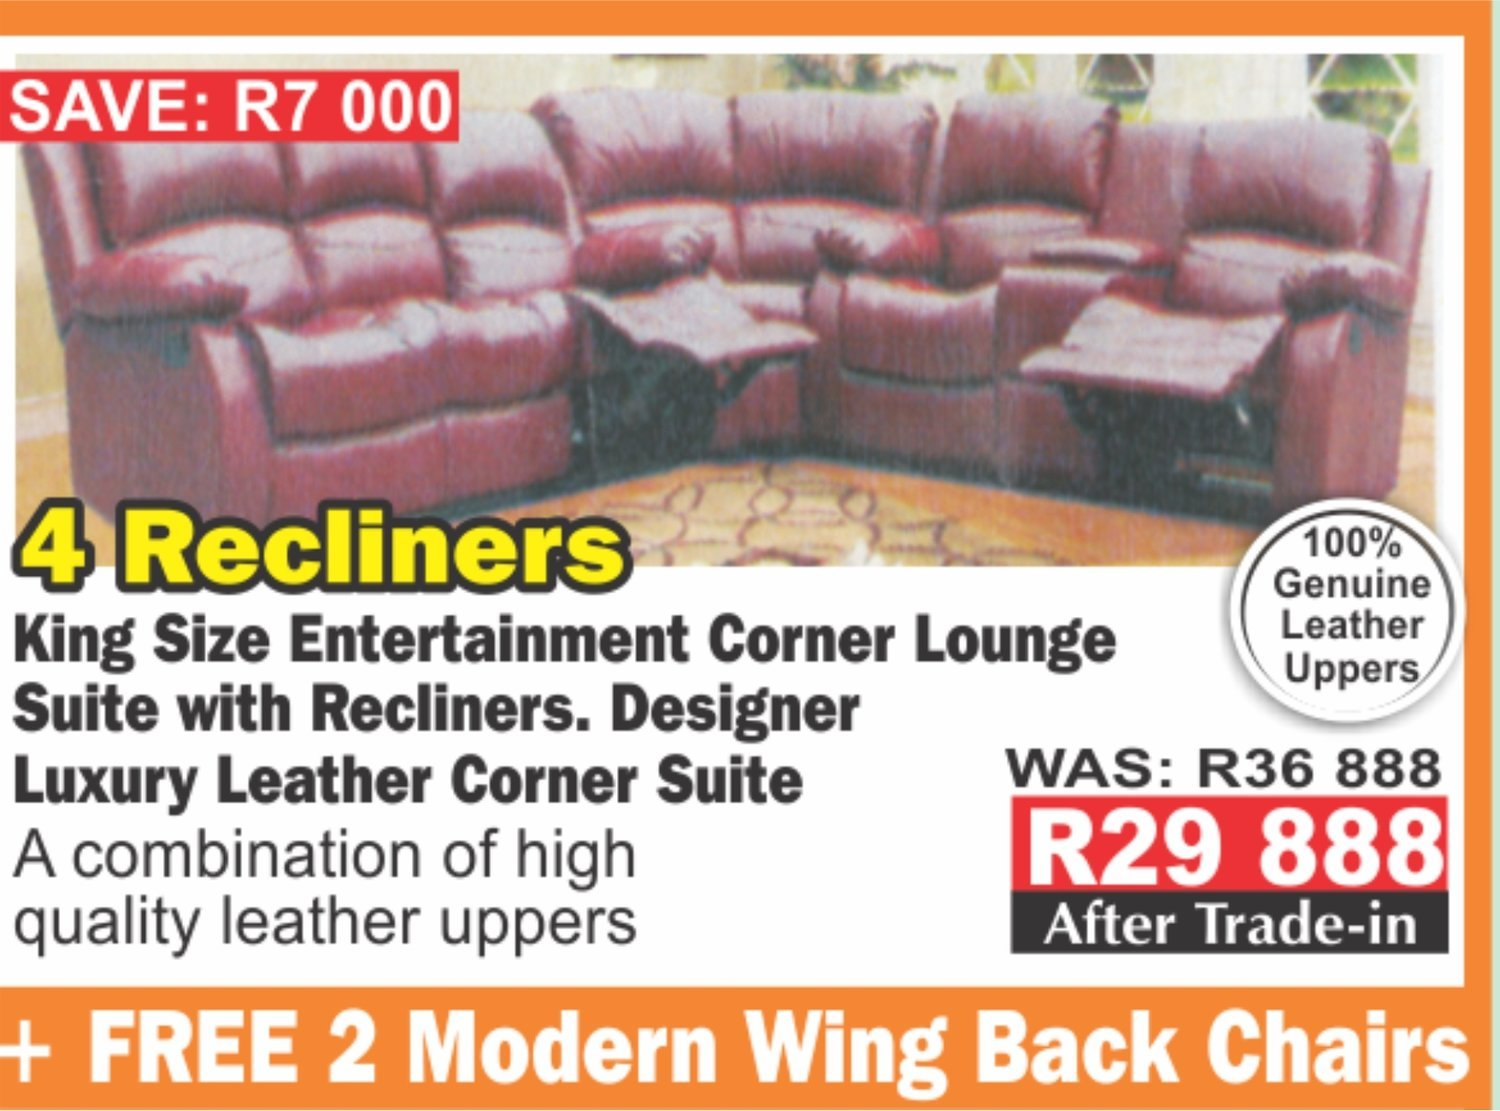 4 Recliners king size entertainment corner lounge suite with Trade-Inn